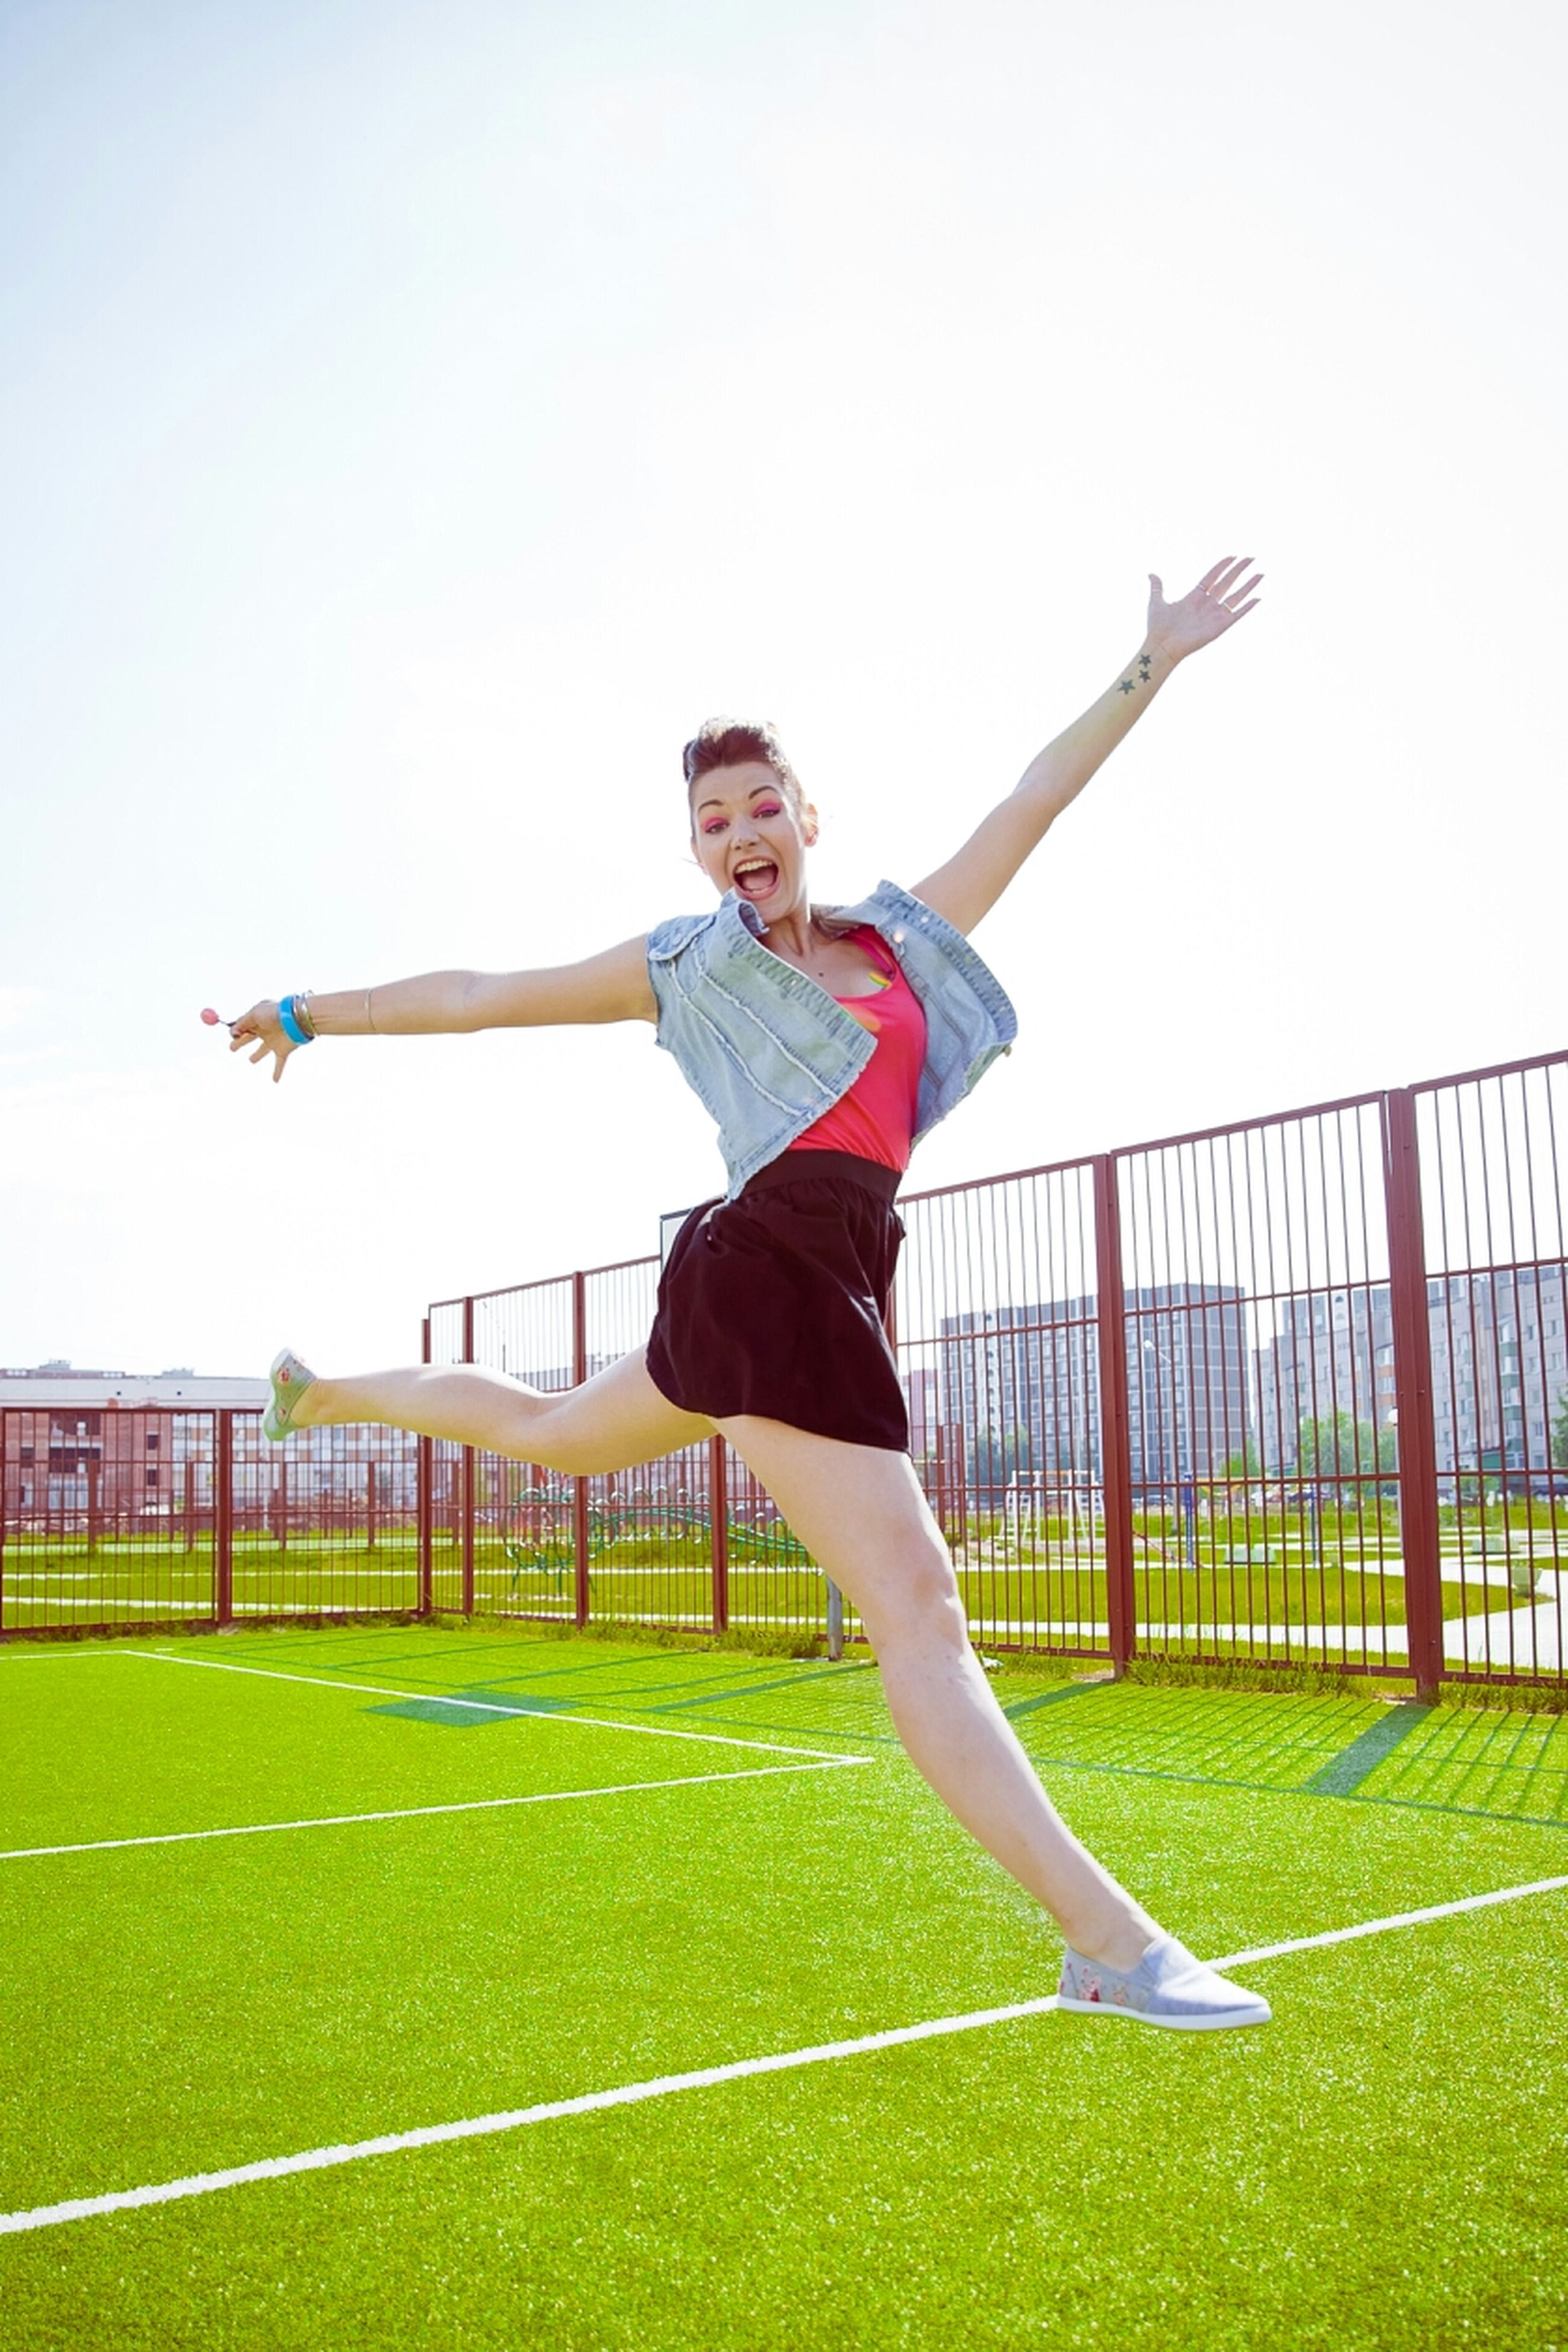 full length, lifestyles, leisure activity, casual clothing, person, grass, young adult, mid-air, arms outstretched, standing, fun, enjoyment, happiness, clear sky, front view, childhood, park - man made space, smiling